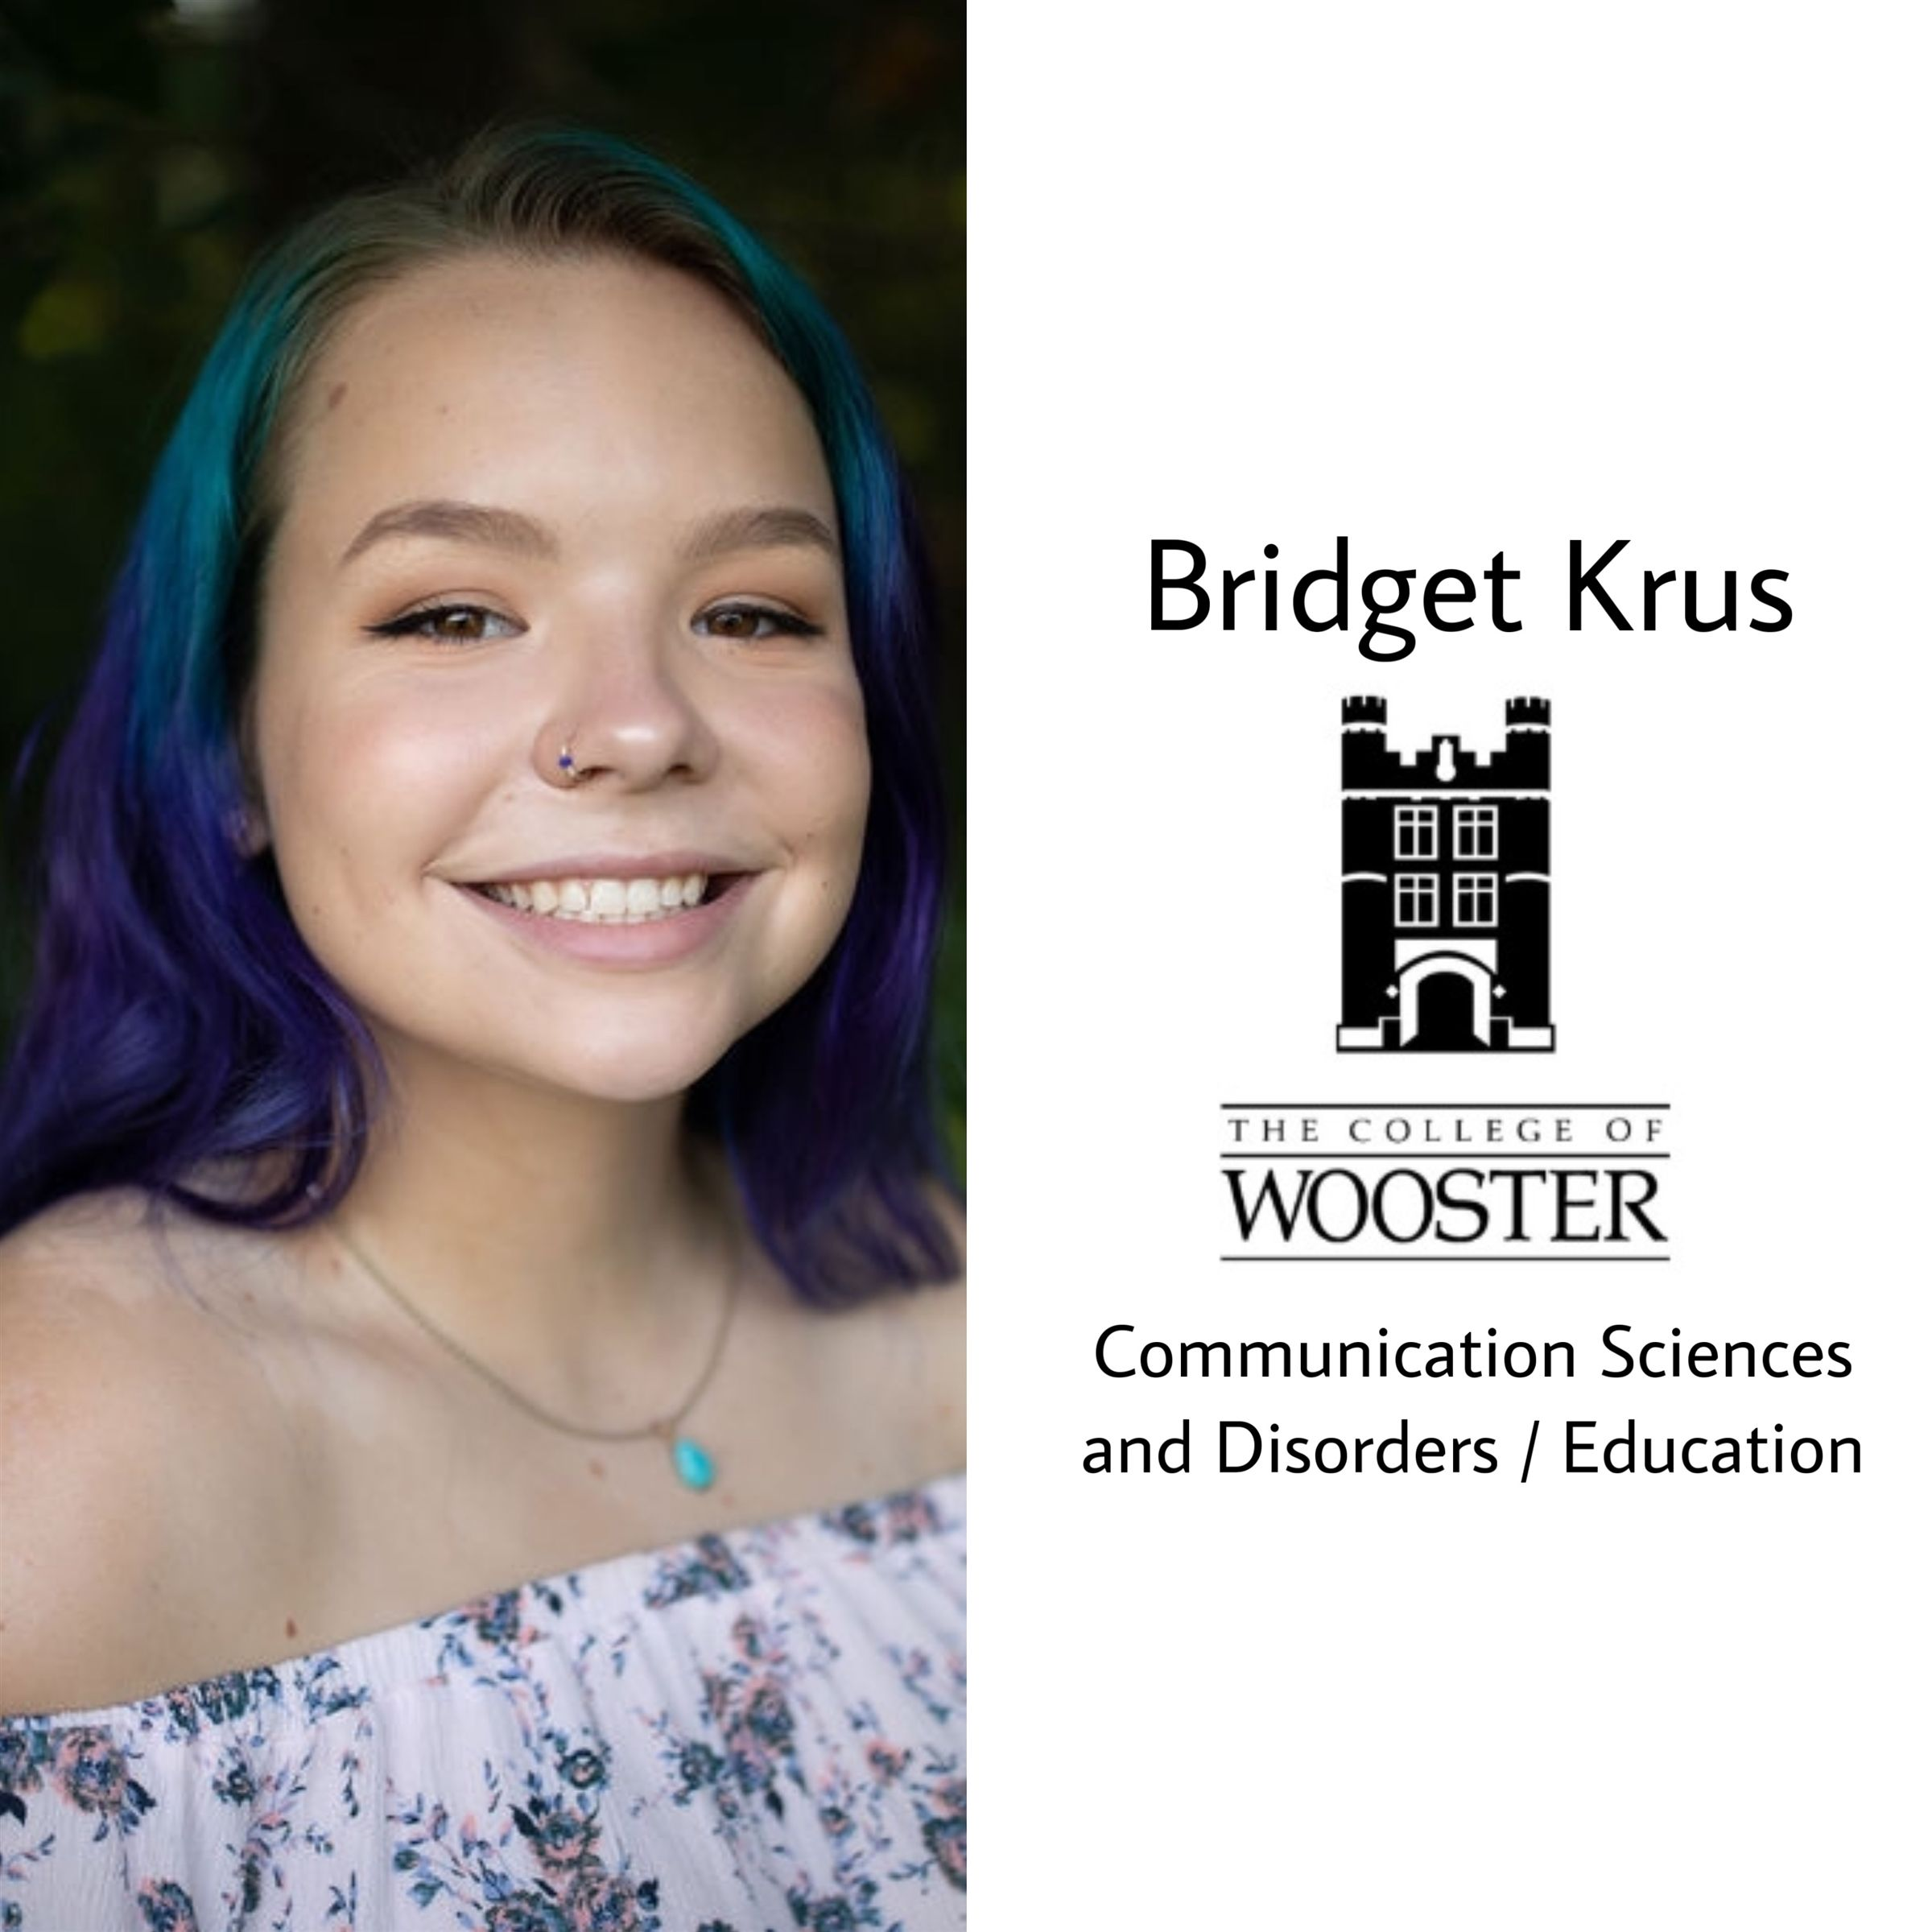 Congrats Bridget!!!! She will be at the College of Wooster this fall. She is majoring in Communication sciences and disorders and Education! So proud!